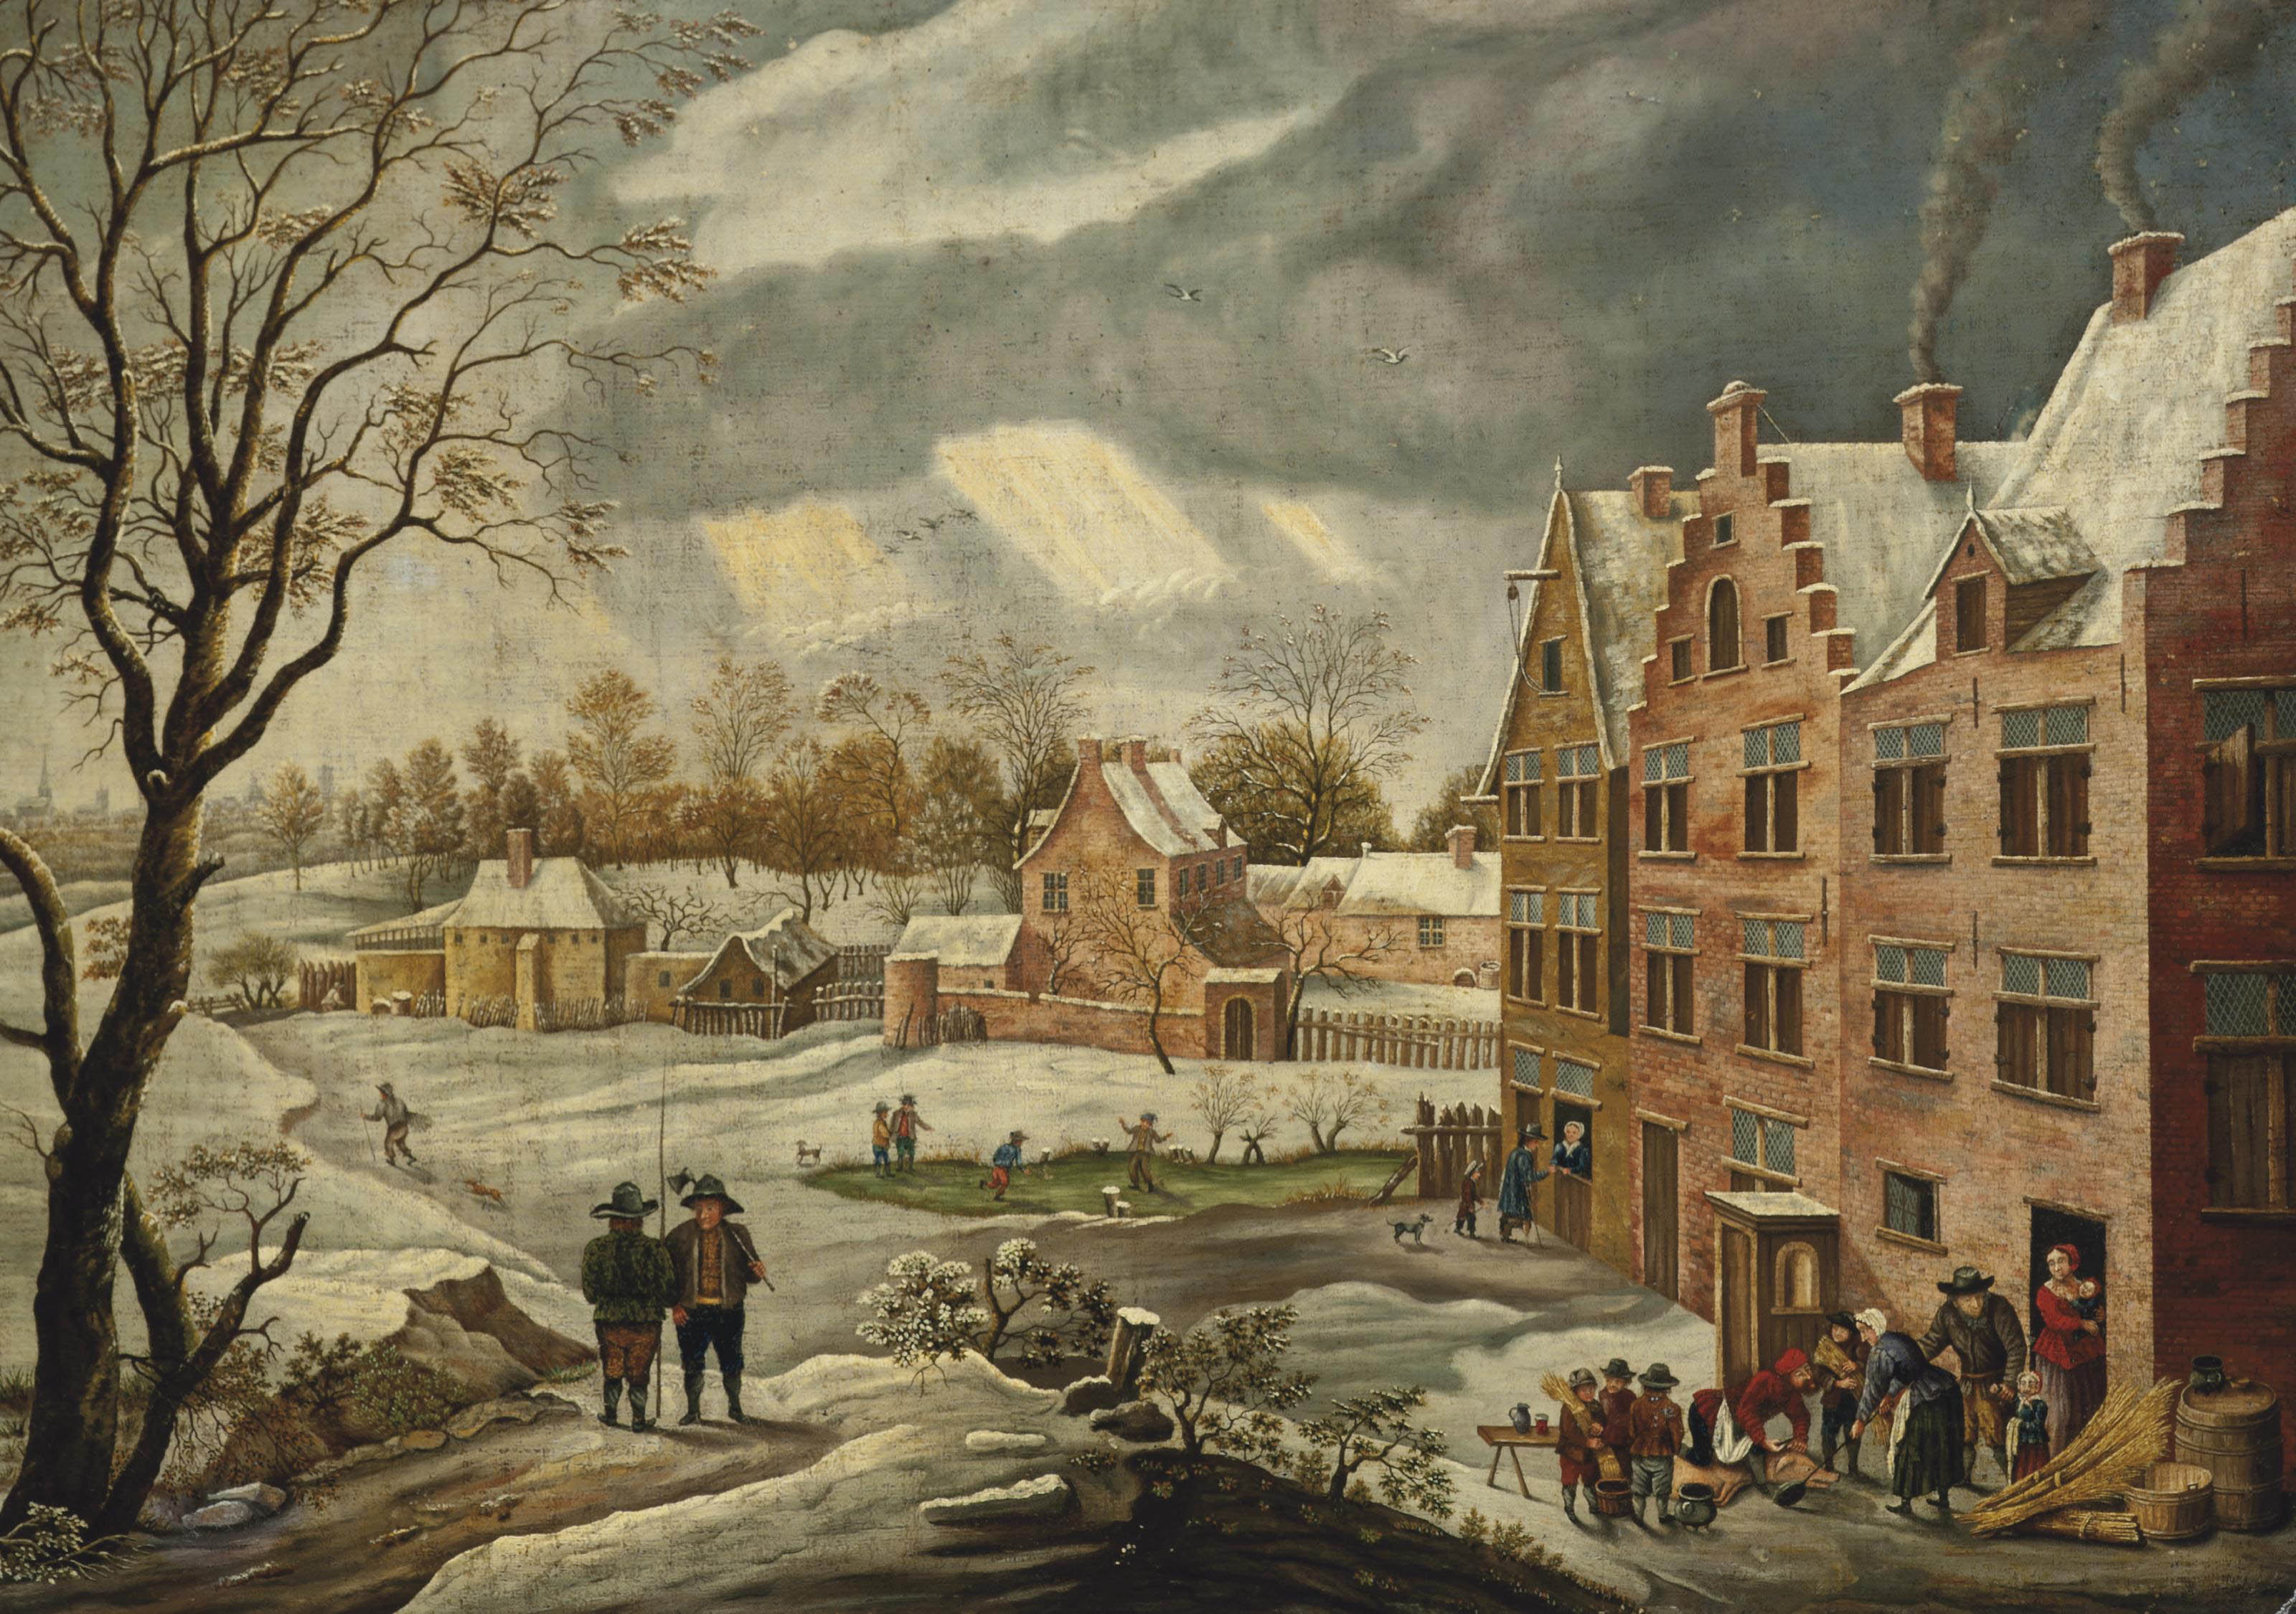 A winter landscape of a village with figures conversing on a track and figures skating on a frozen lake